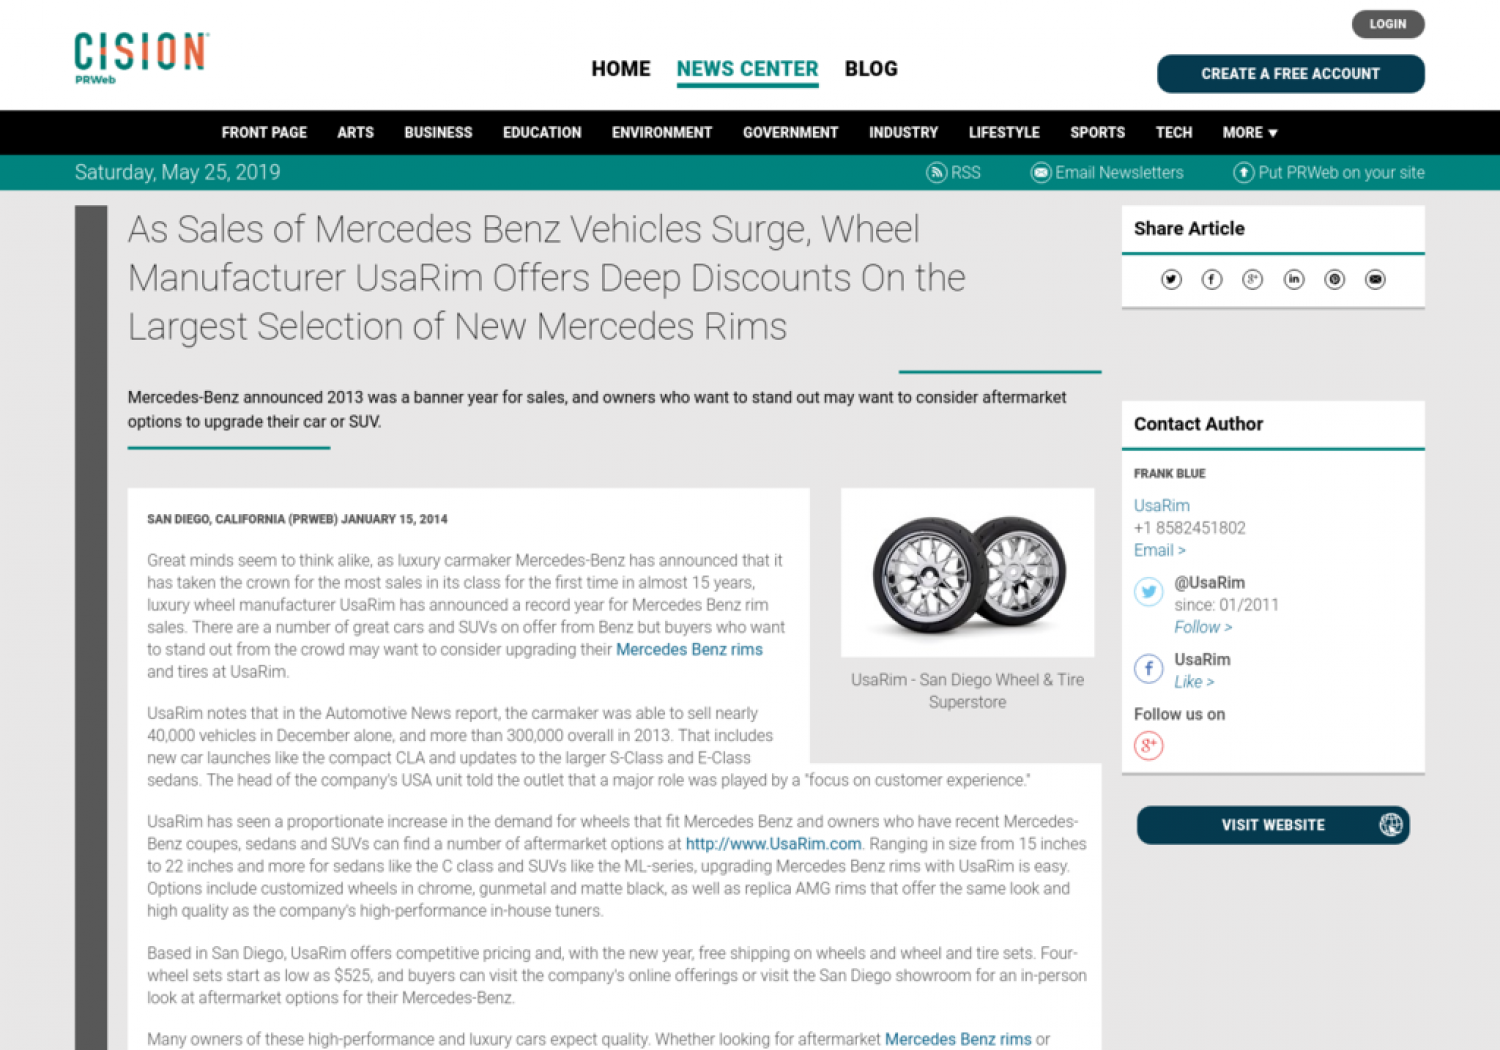 As Sales of Mercedes Benz Vehicles Surge, Wheel Manufacturer UsaRim Offers Deep Discounts On the Largest Selection of New Mercedes Rims Infographic